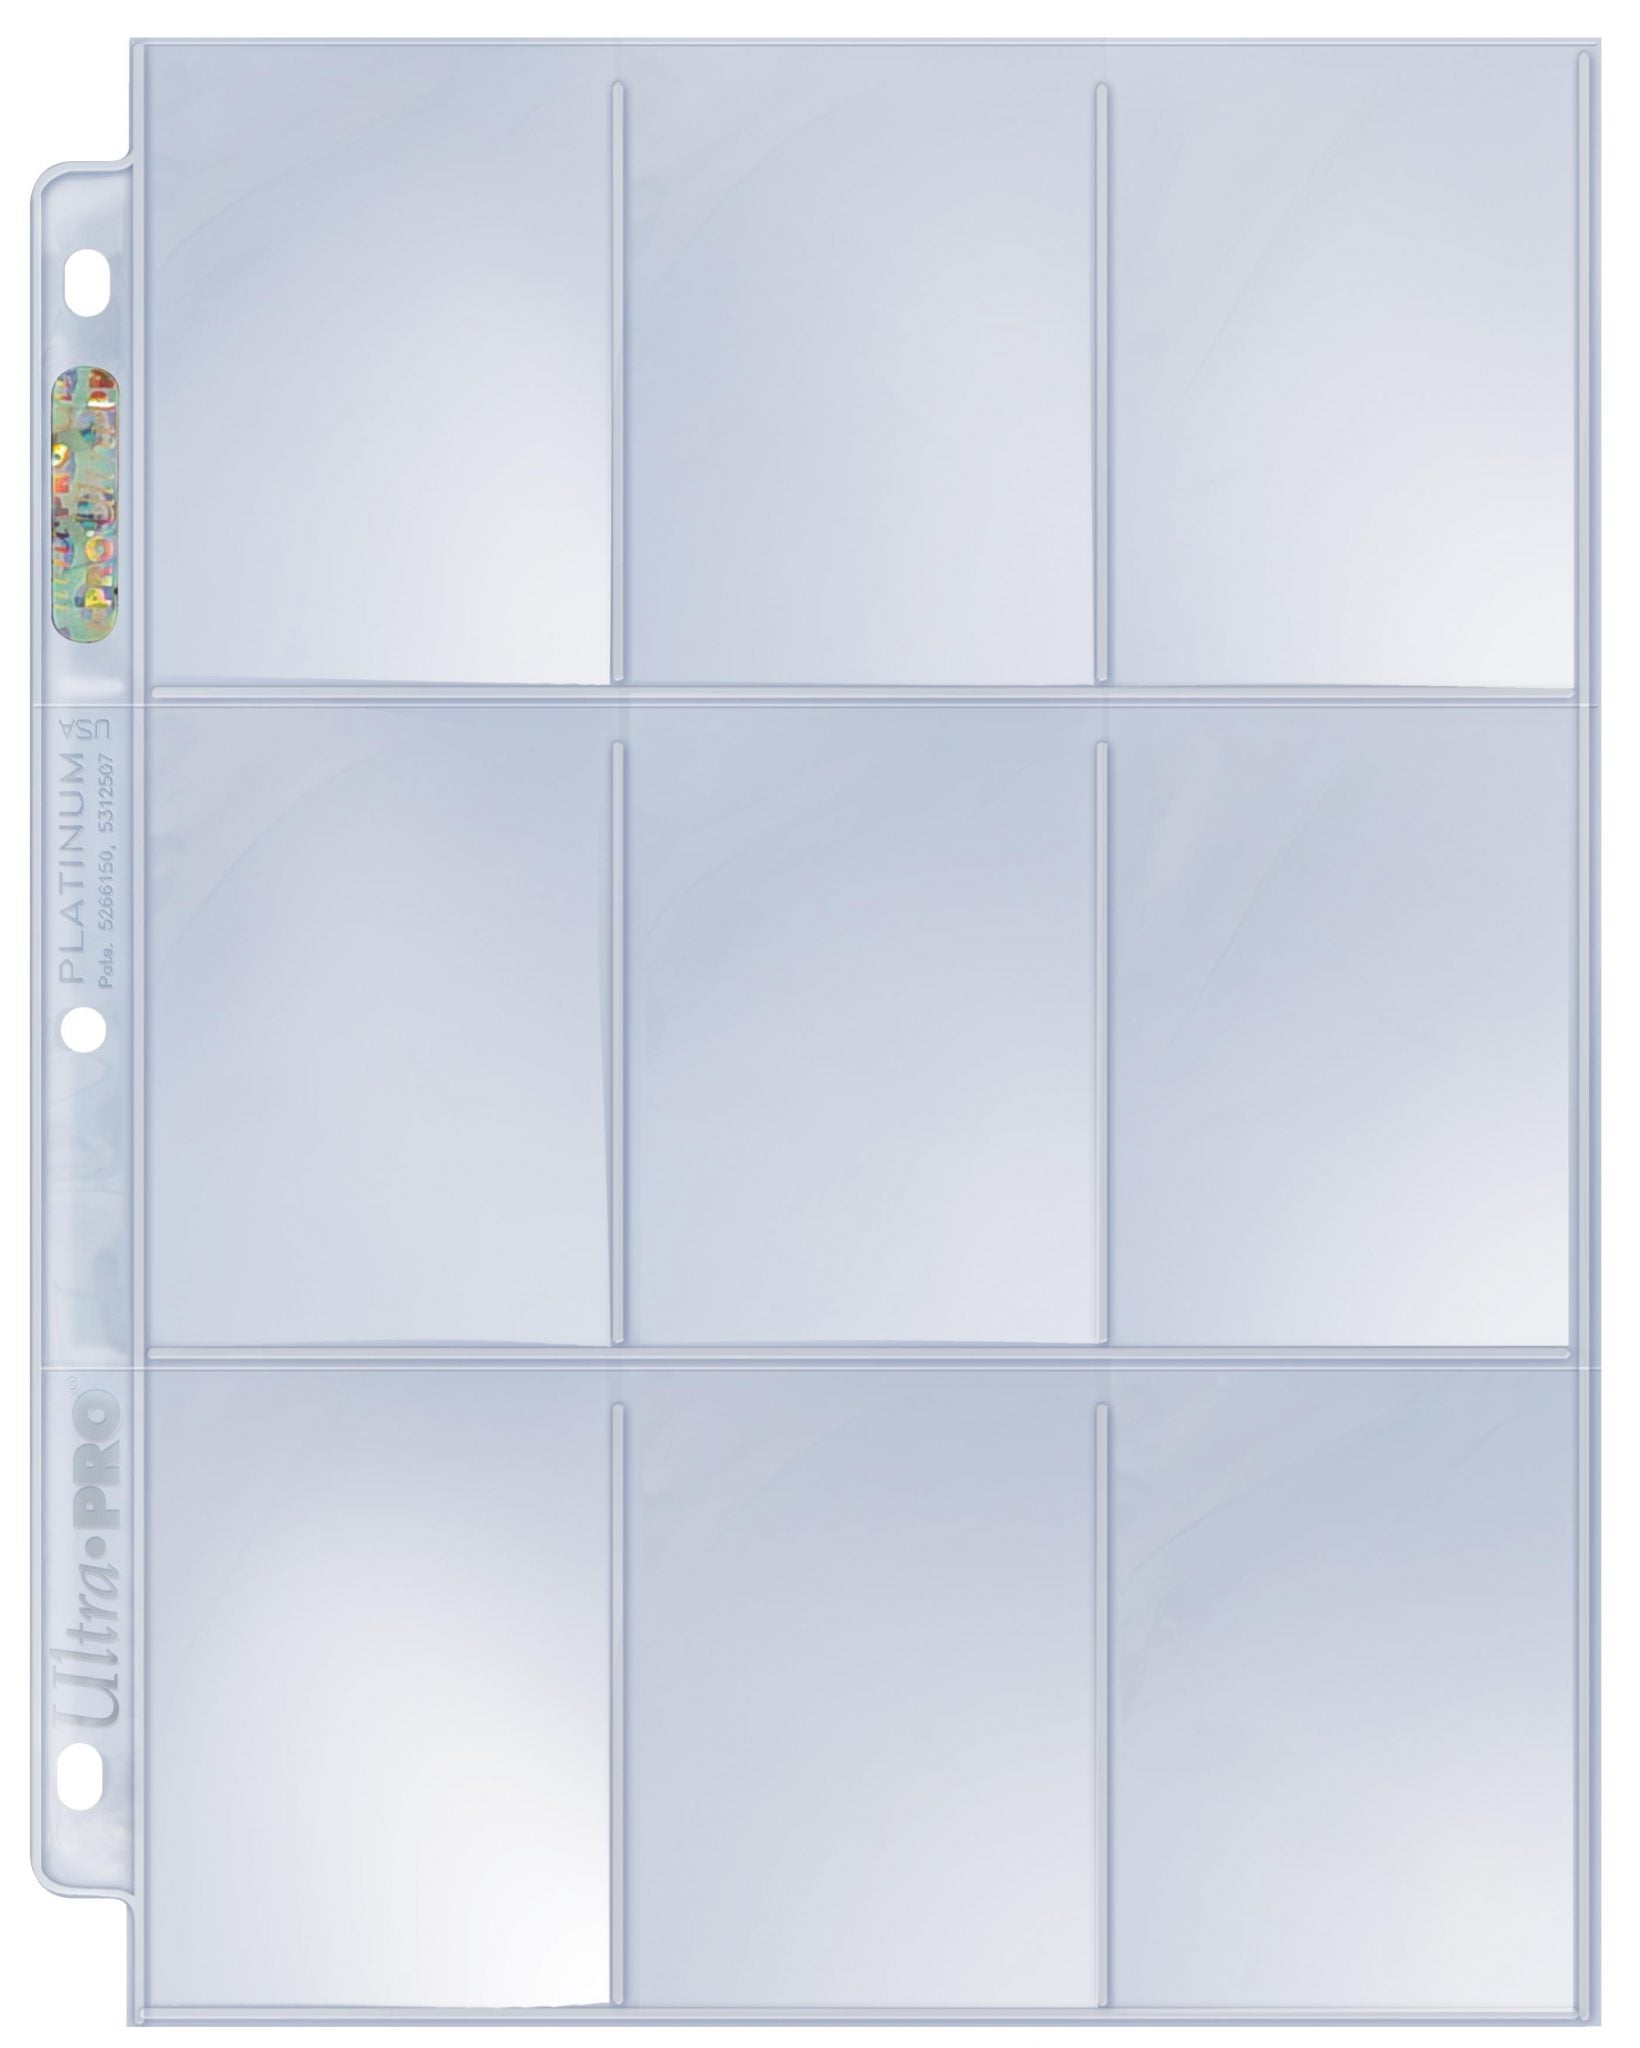 9-Pocket Platinum Page for Standard Size Cards - Duel Kingdom | Duel Kingdom